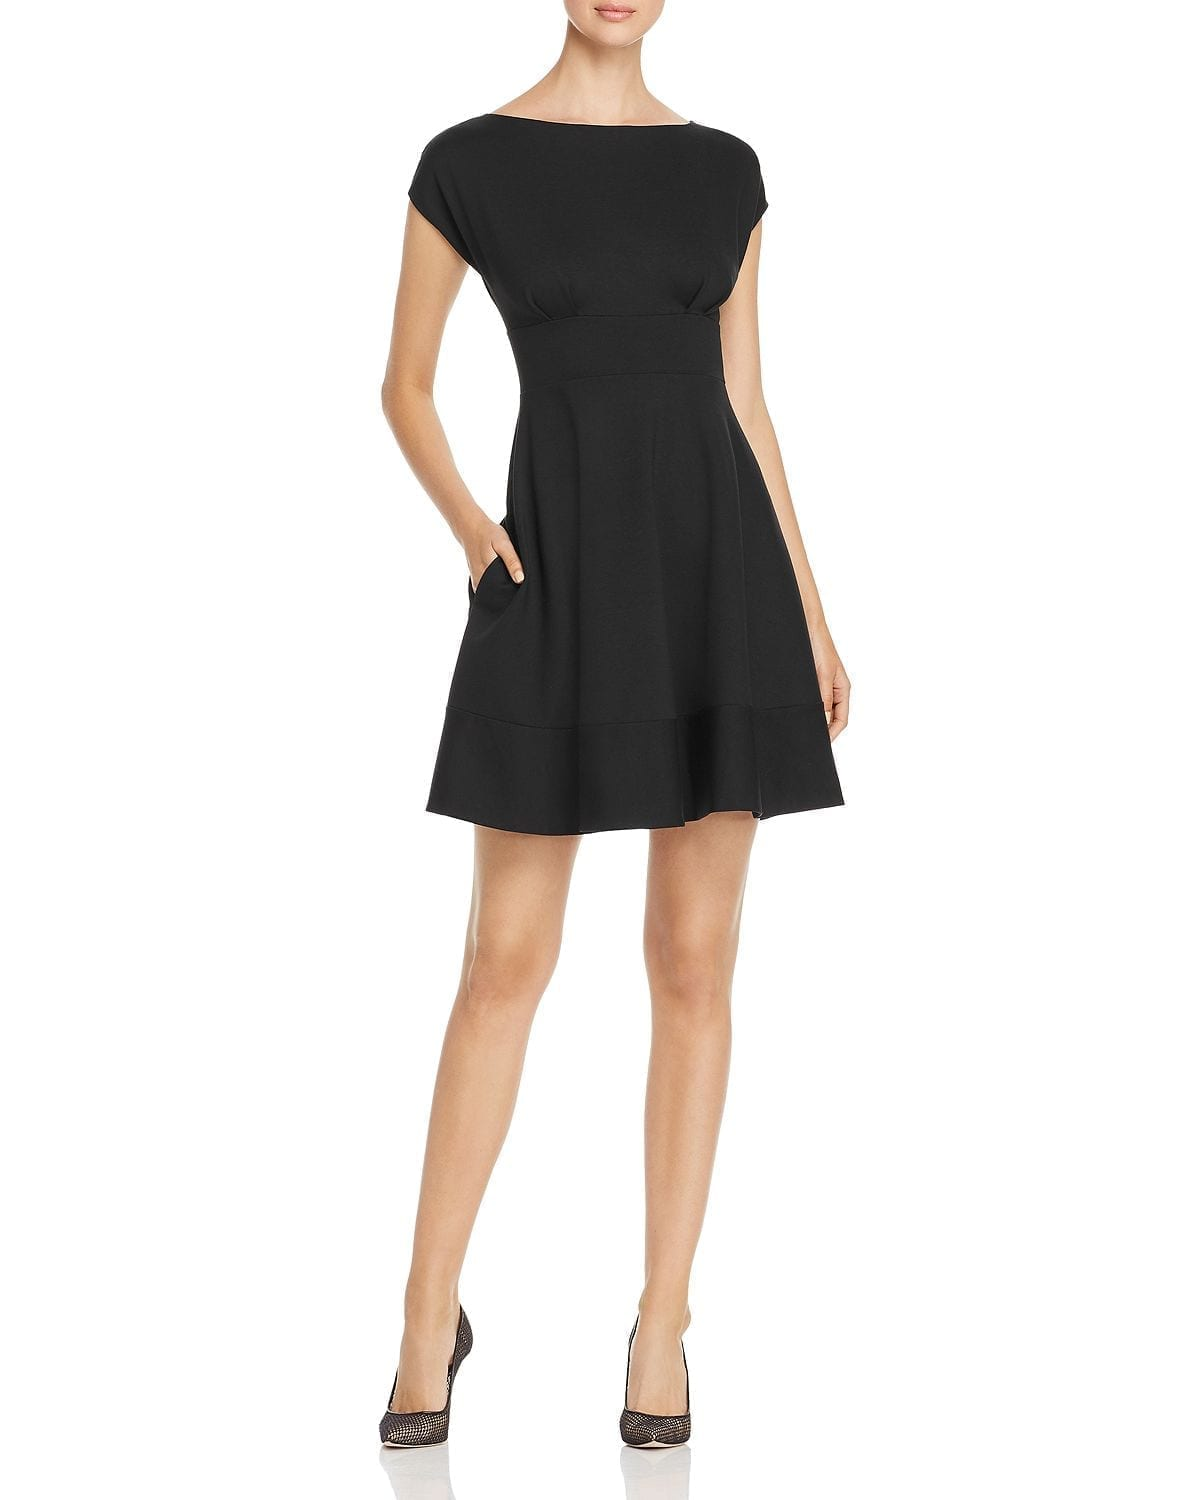 KATE SPADE NEW YORK Fiorella Ponte Cap-Sleeve Dress